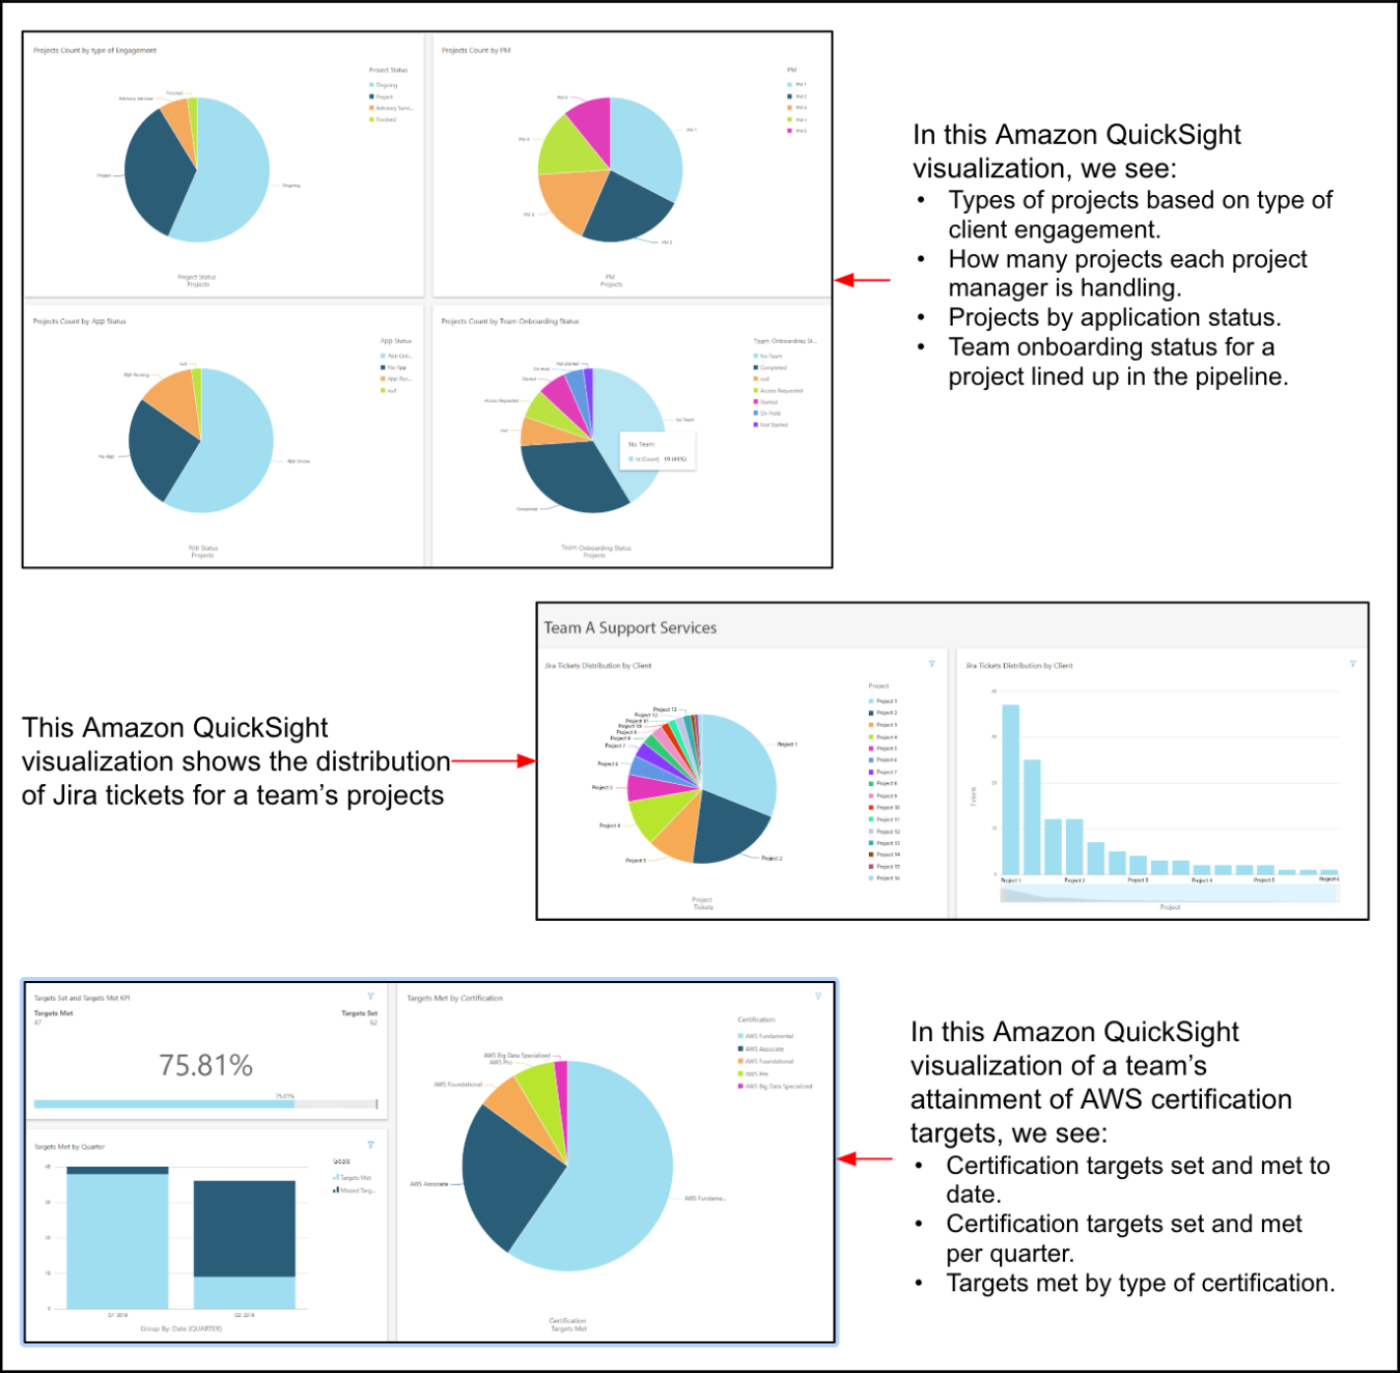 QuickSight visualizations